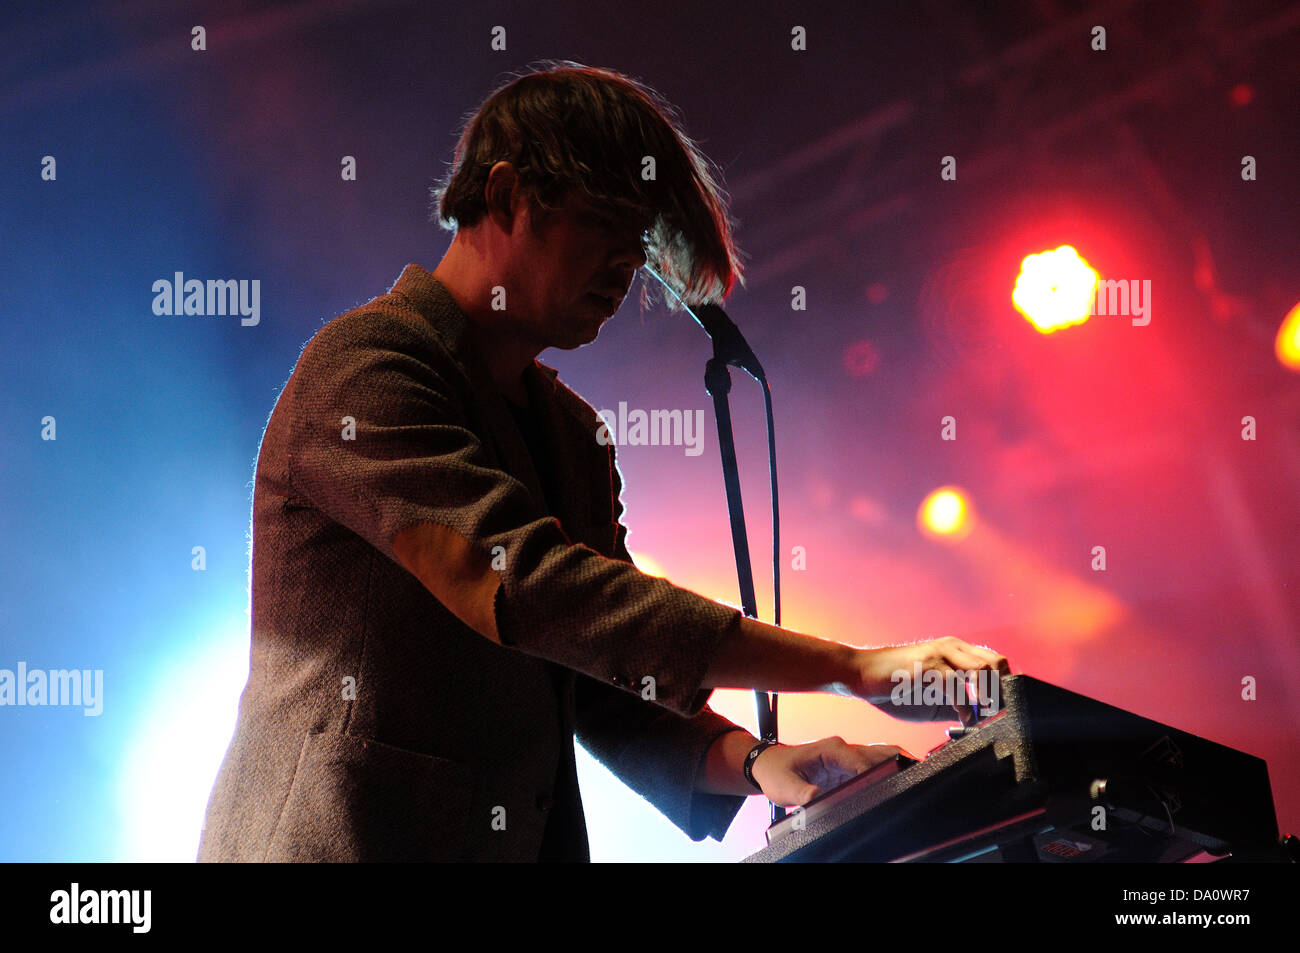 BARCELONA - MAY 24: Liars band, performs at Heineken Primavera Sound 2013 Festival on May 24, 2013 in Barcelona, - Stock Image